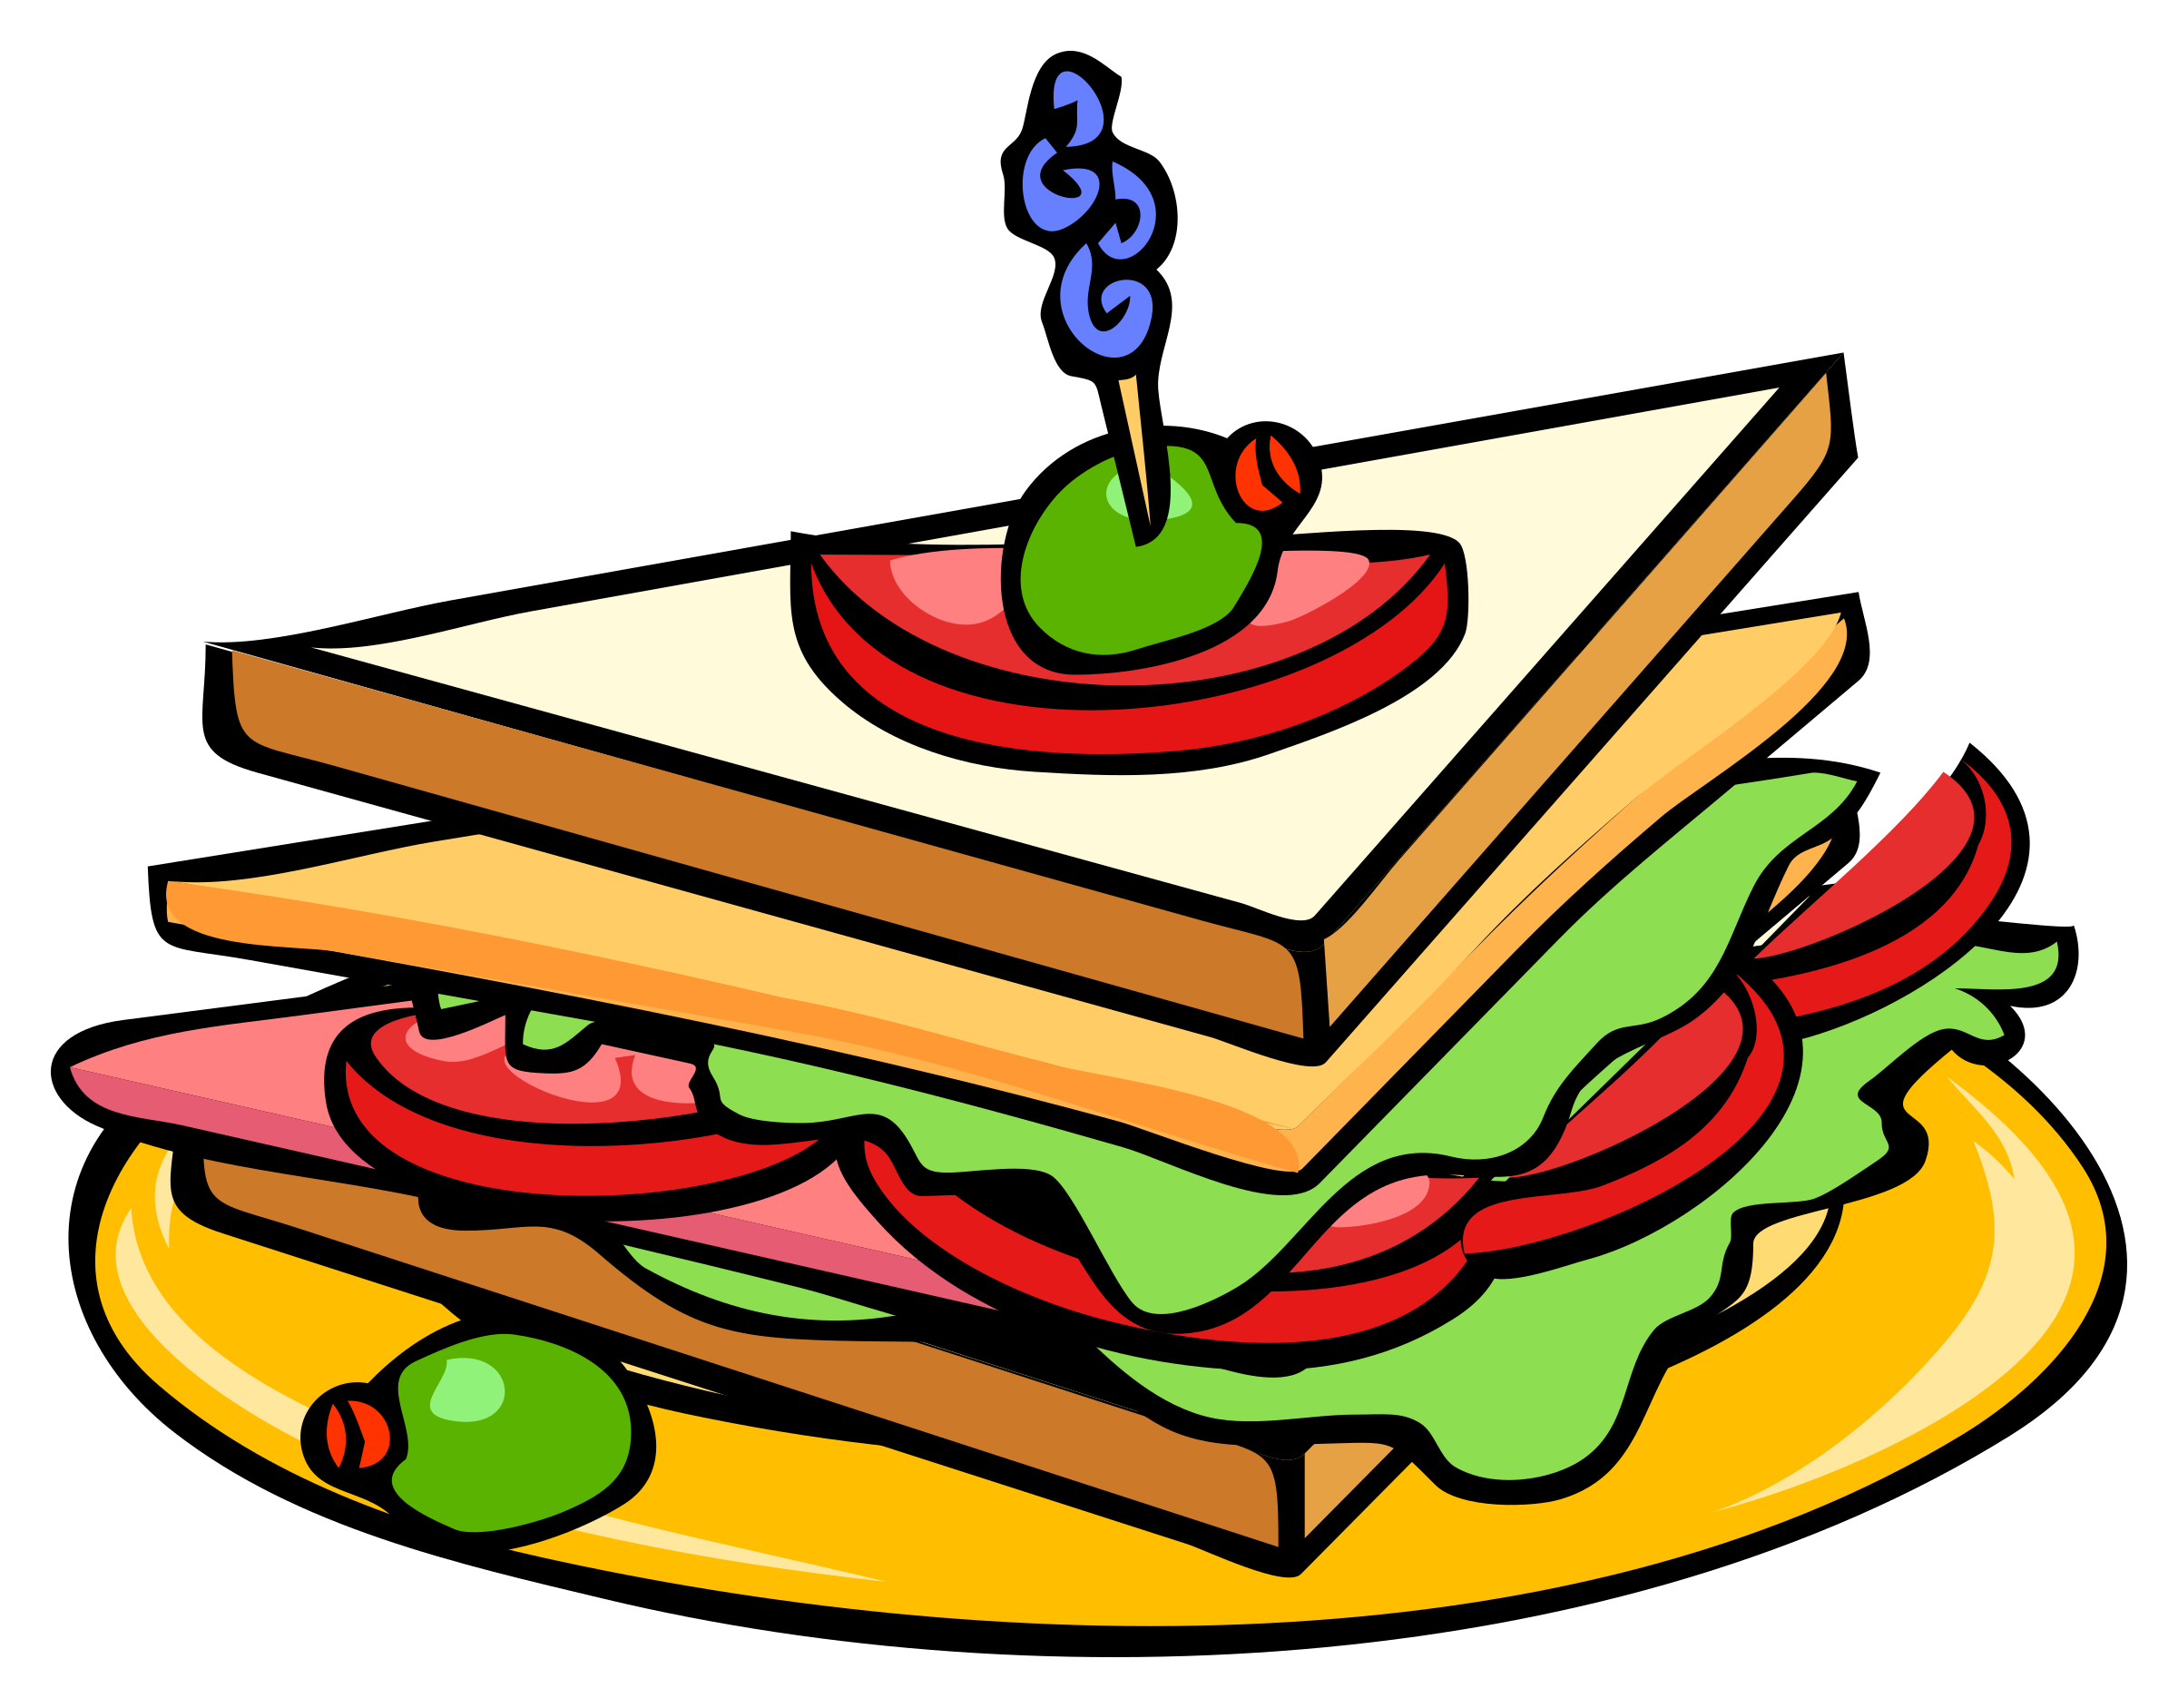 F a q real. Clipart lunch sandwich lunch